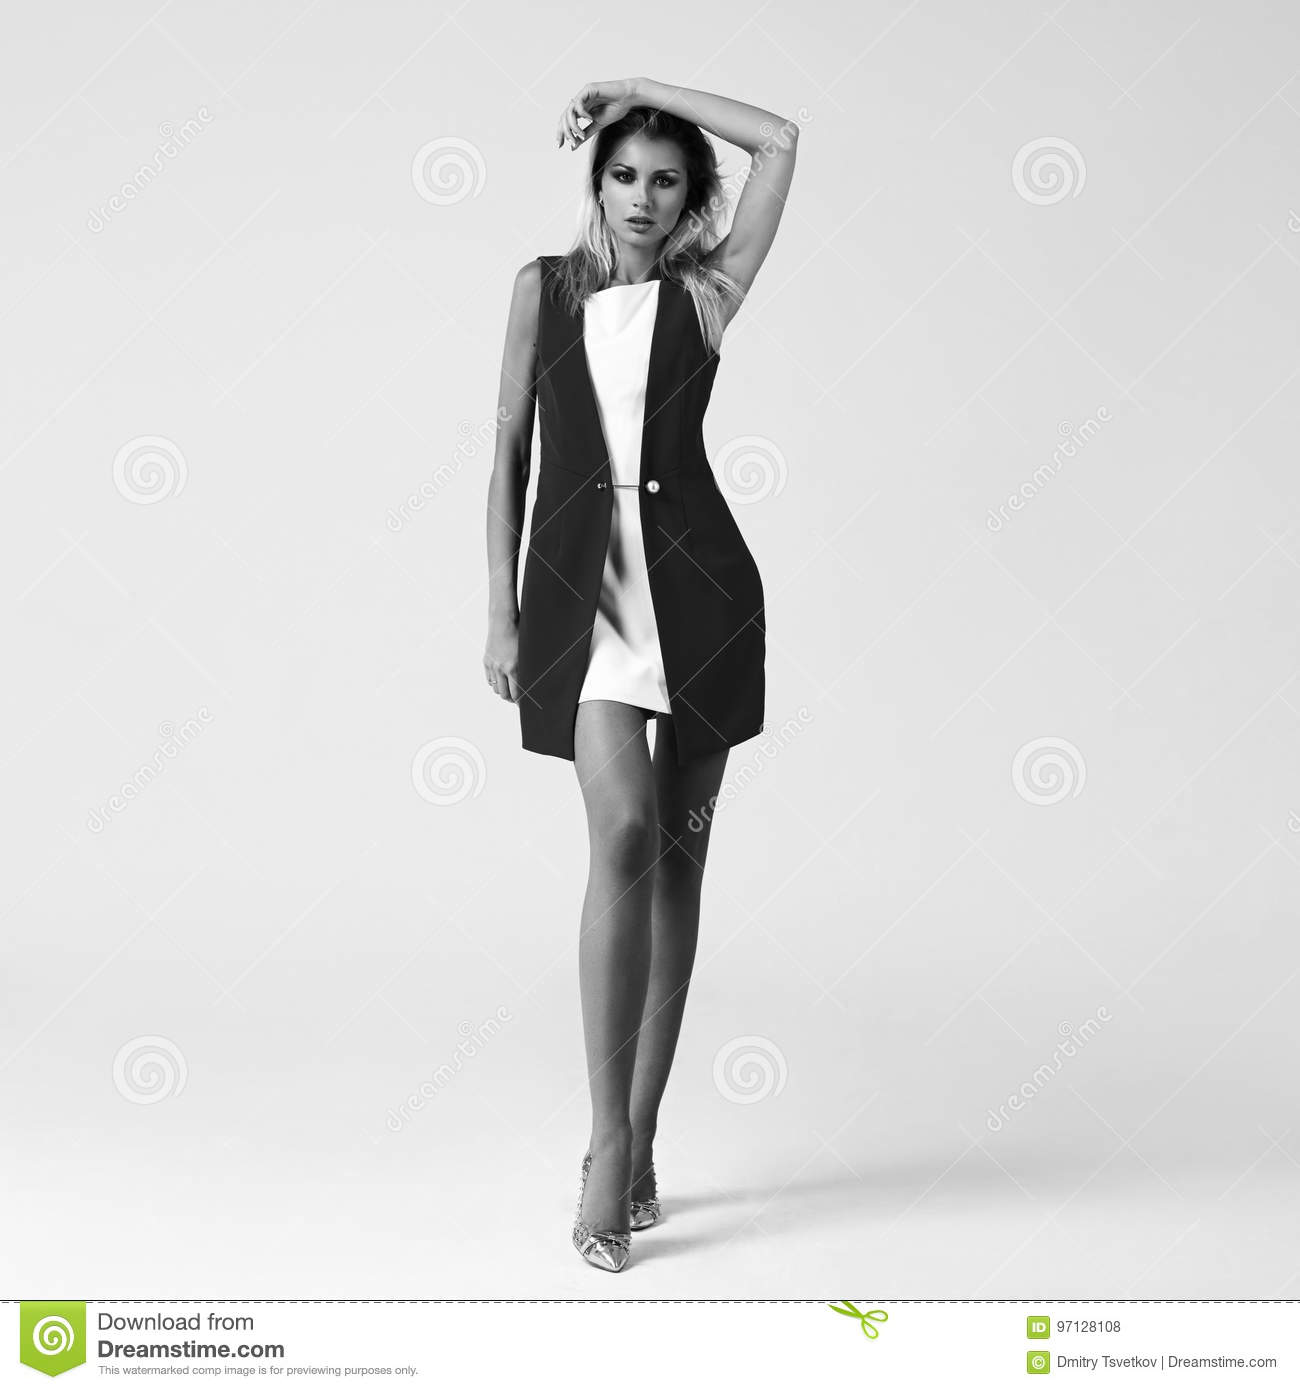 215c9fbb02 Young beautiful stylish woman standing and posing in white short dress and  red jacket on bright gray background. Studio fashion style full length  portrait.